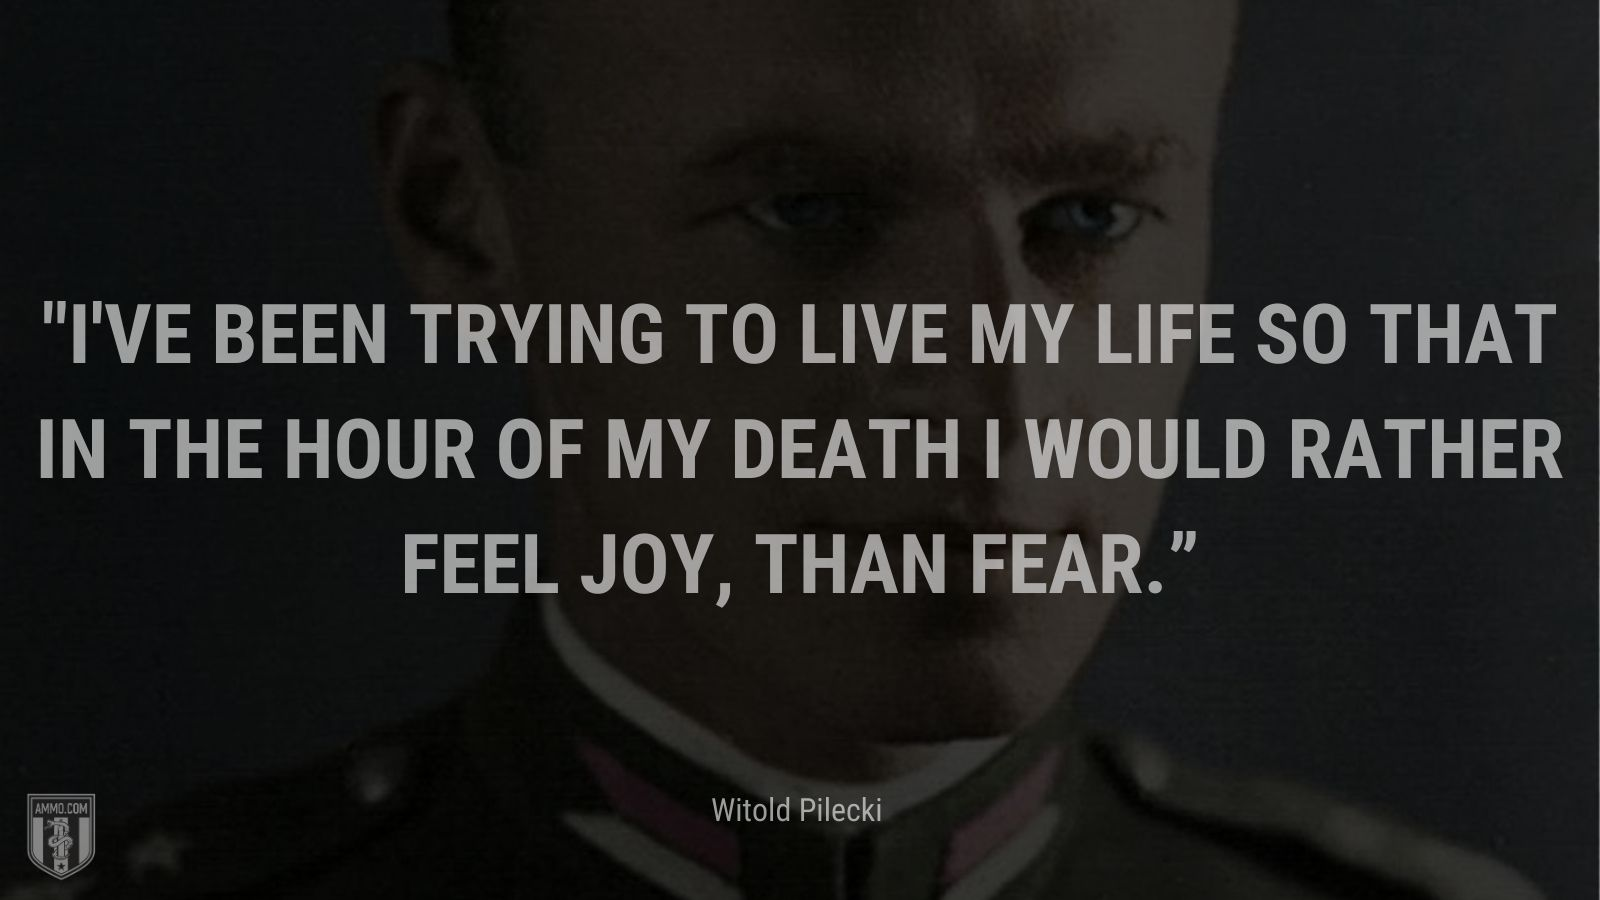 """""""I've been trying to live my life so that in the hour of my death I would rather feel joy, than fear."""" - Witold Pilecki"""